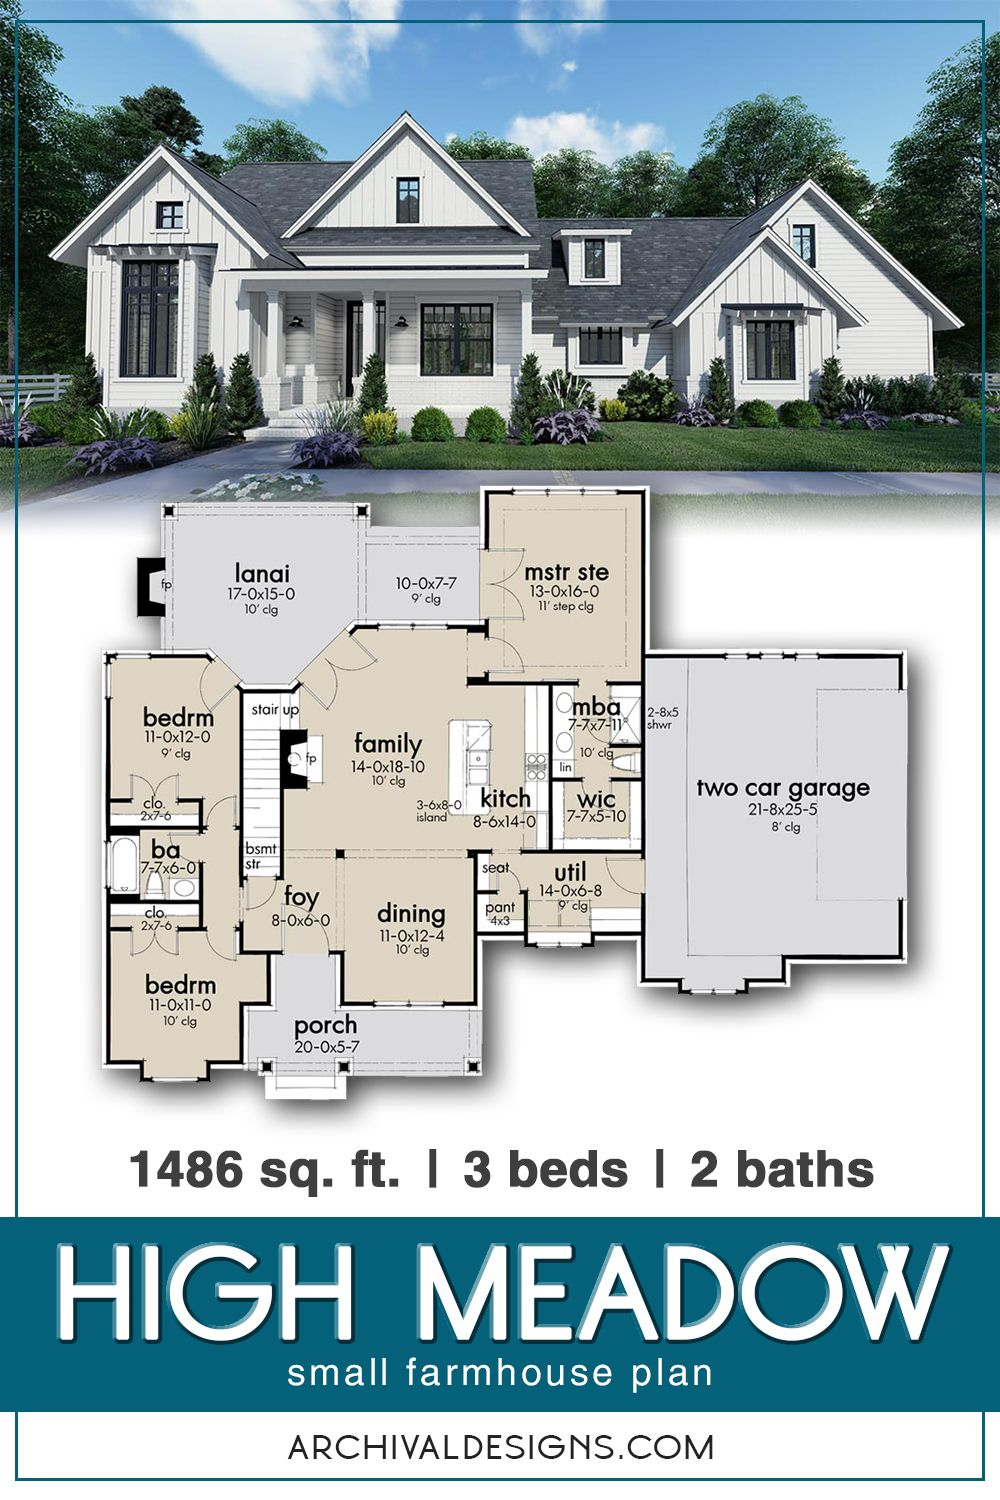 High Meadow Small Farmhouse Plan With Huge Laundry And Bonus Rooms Small Farmhouse Plans Farmhouse Plans Modern Farmhouse Layout